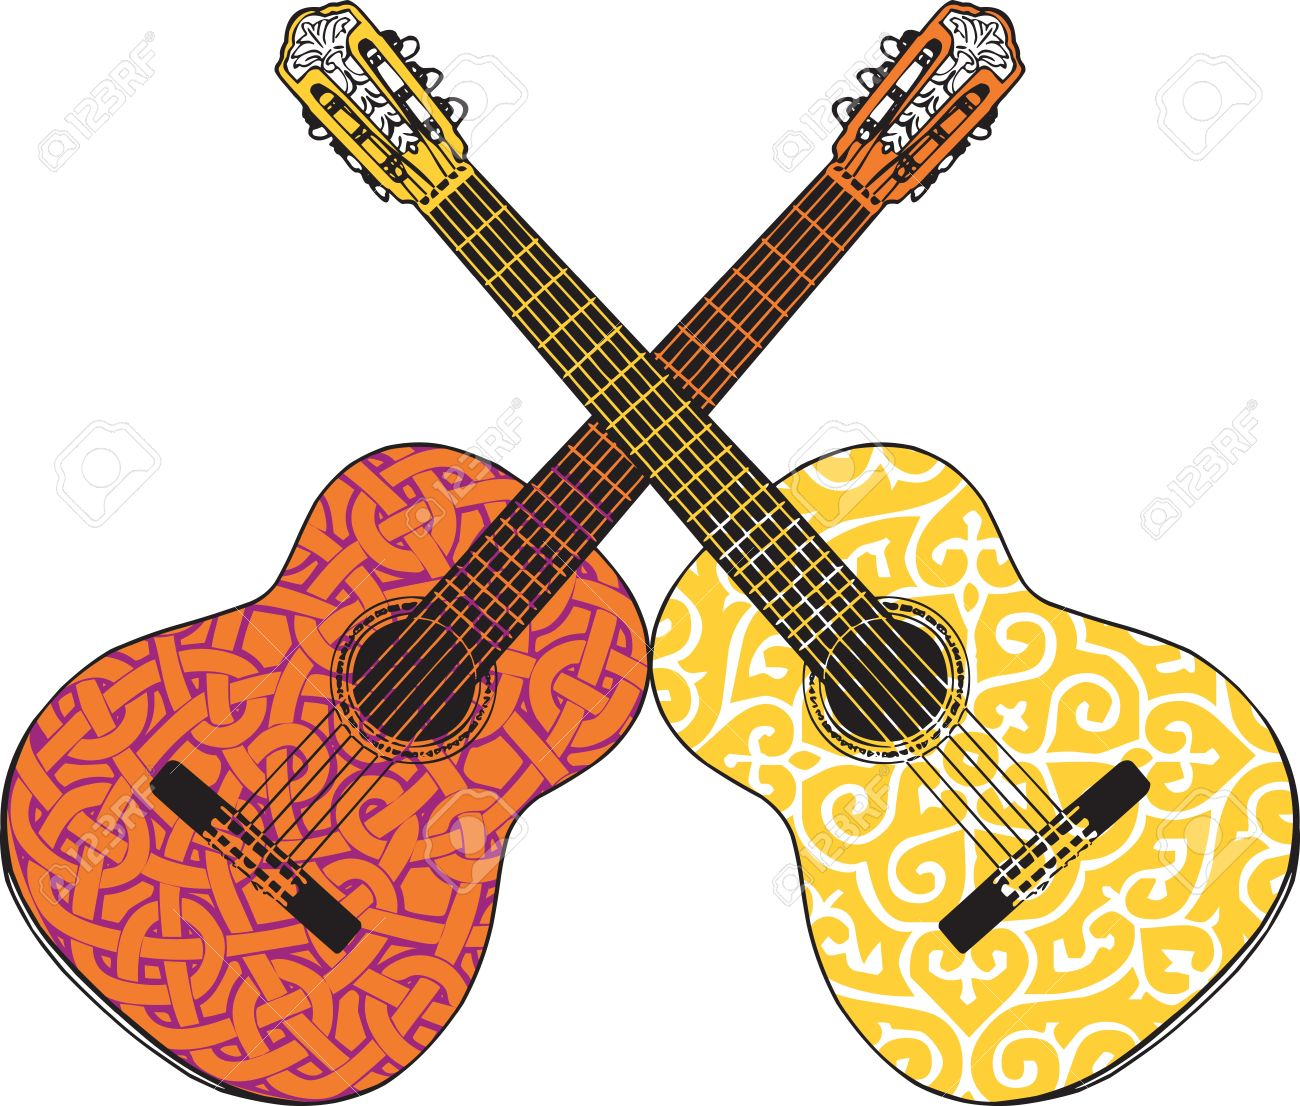 Blues Rock And Roll Stock Vector Illustration And Royalty Free.